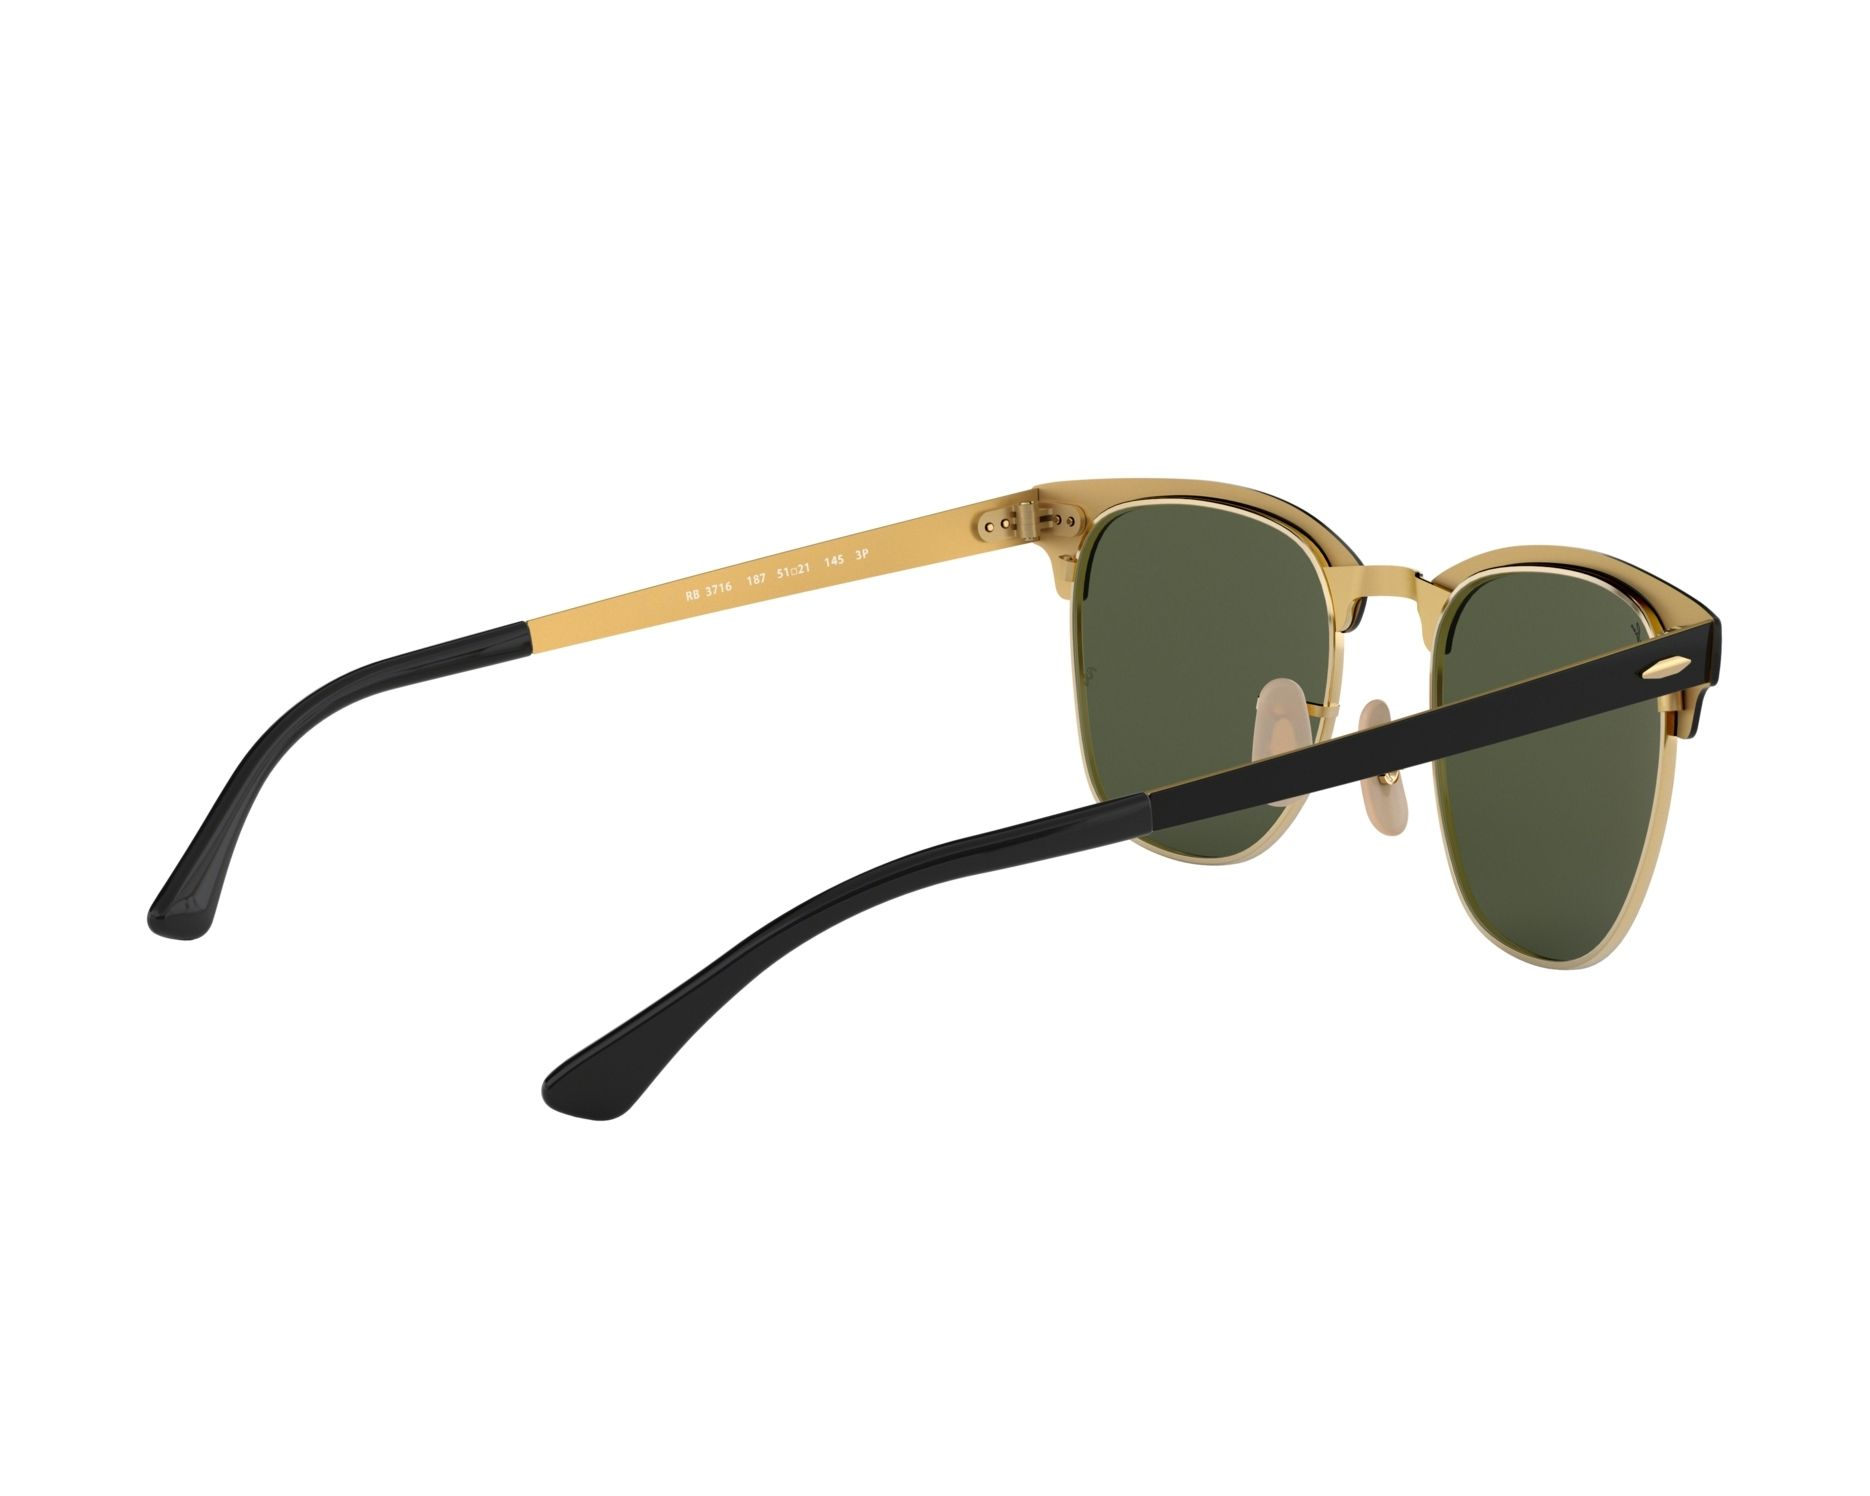 4fc841d1481 Sunglasses Ray-Ban RB-3716 187 - Black Gold 360 degree view 9